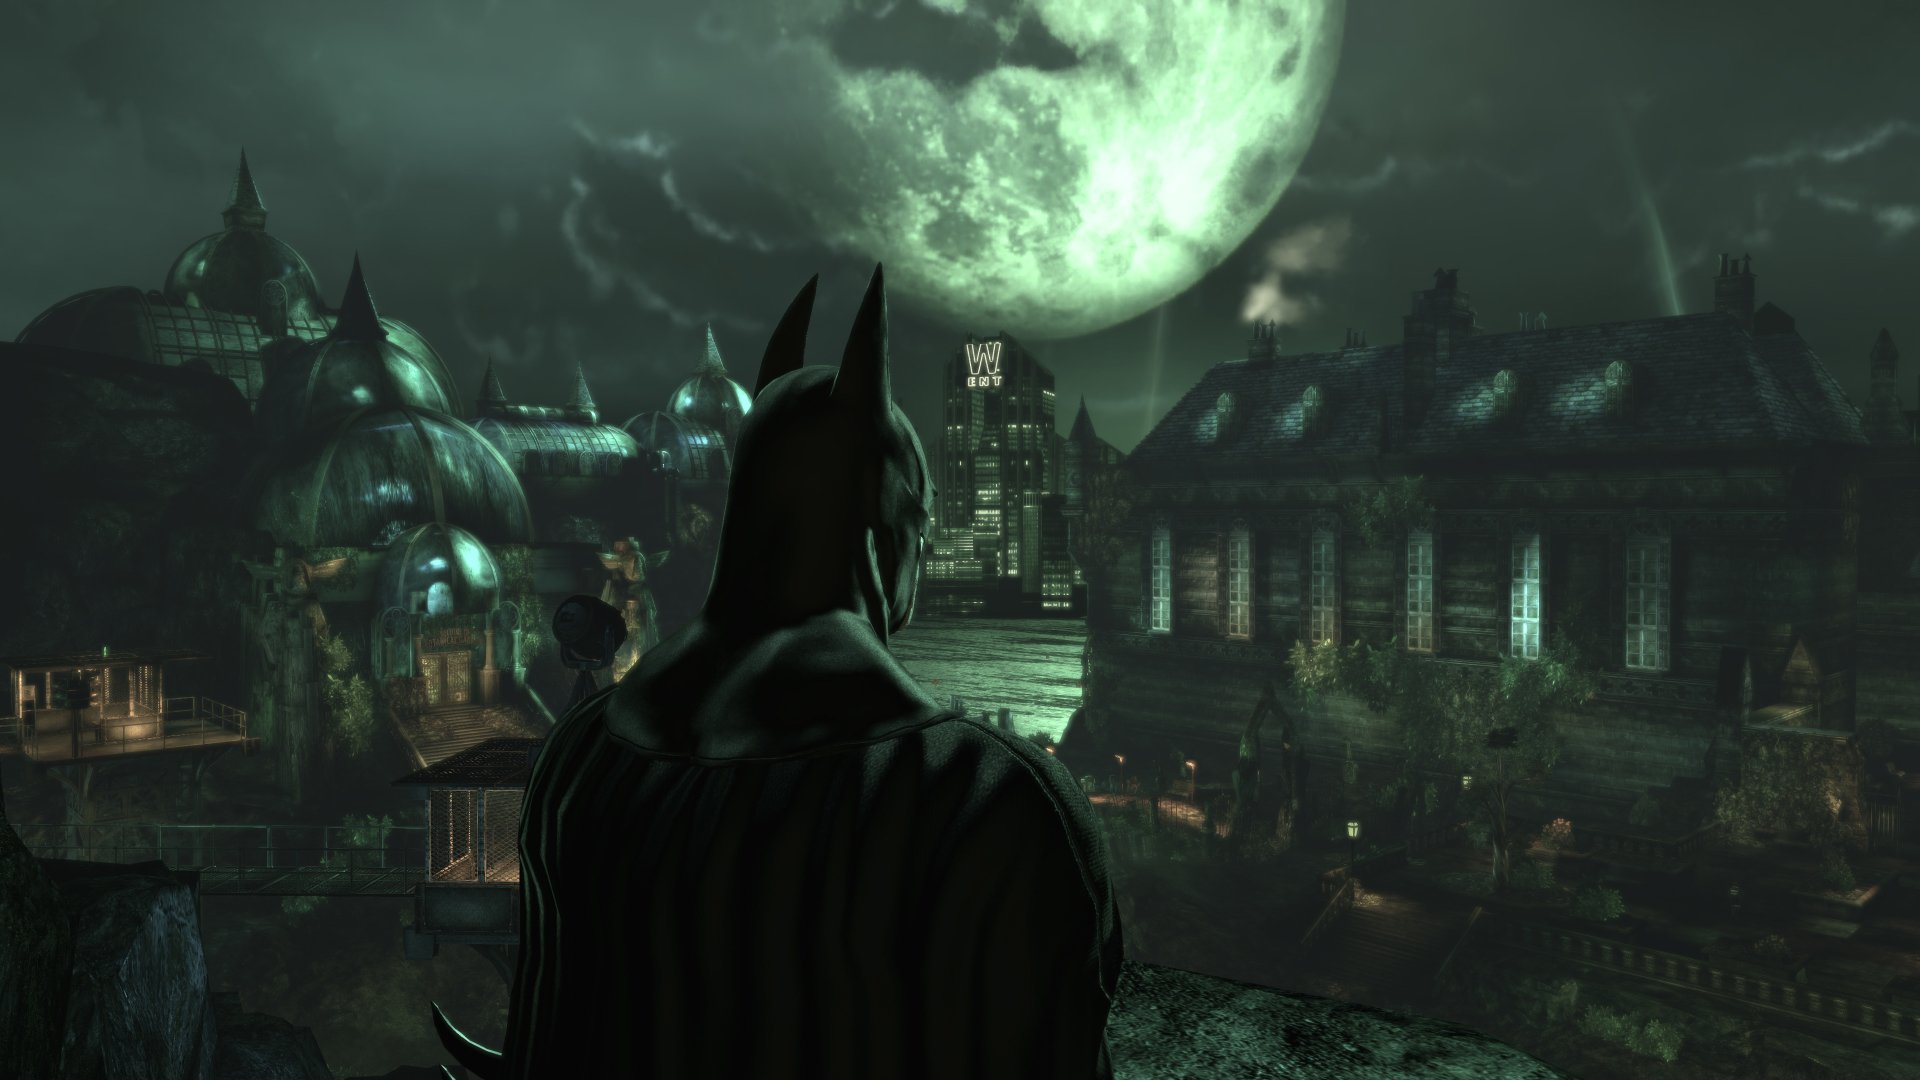 Batman Arkham Asylum Wallpaper: Batman: Arkham Asylum 4k Ultra HD Wallpaper